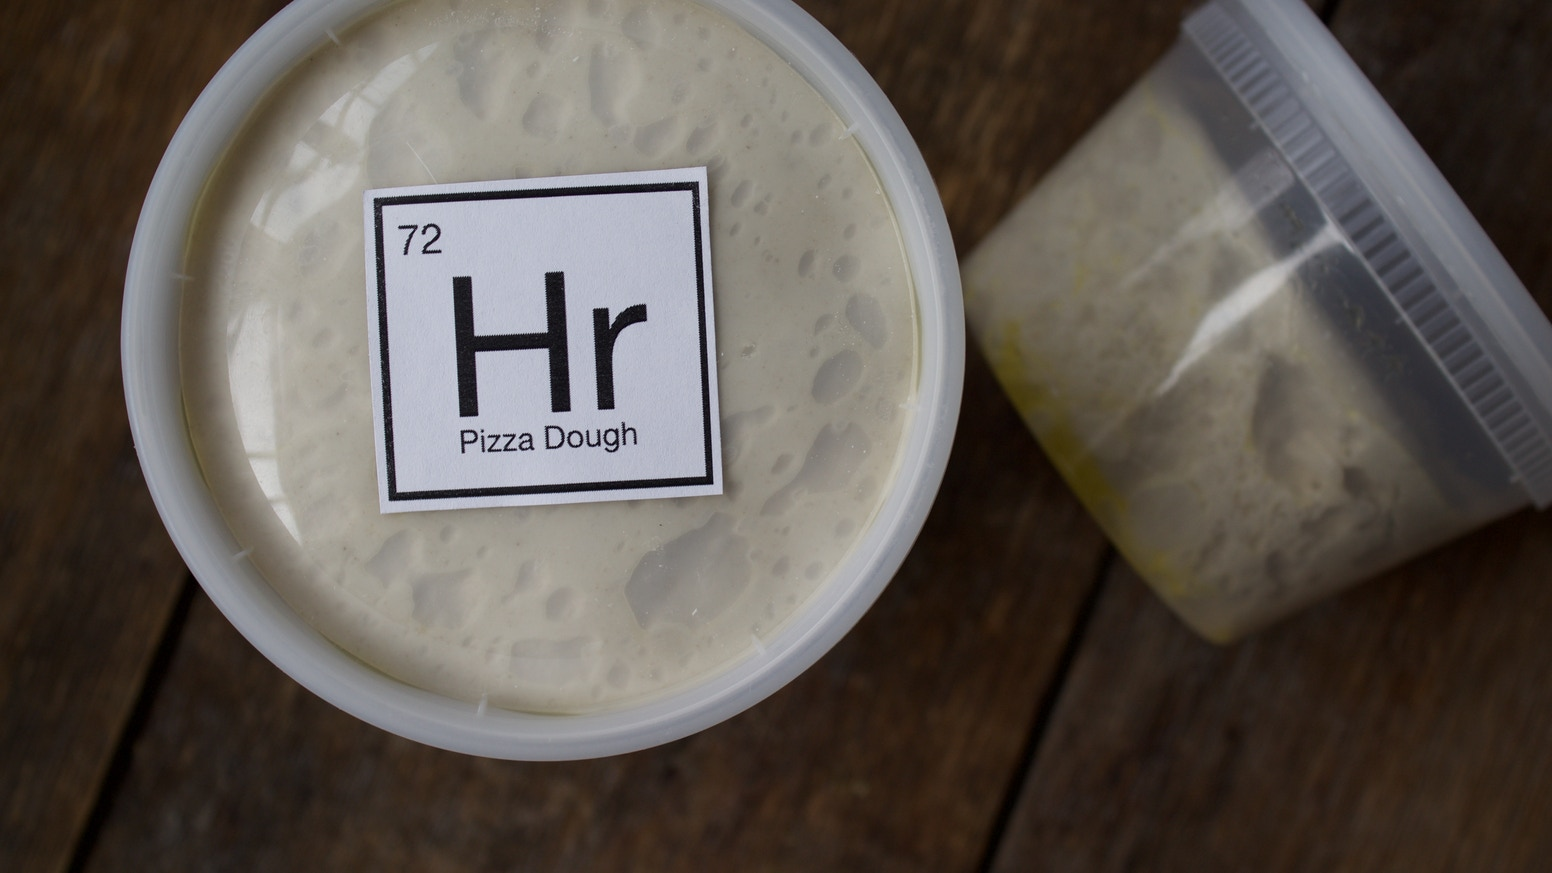 72-Hour Fermented Artisan Pizza Dough made with Organic products delivered to your doorstep!